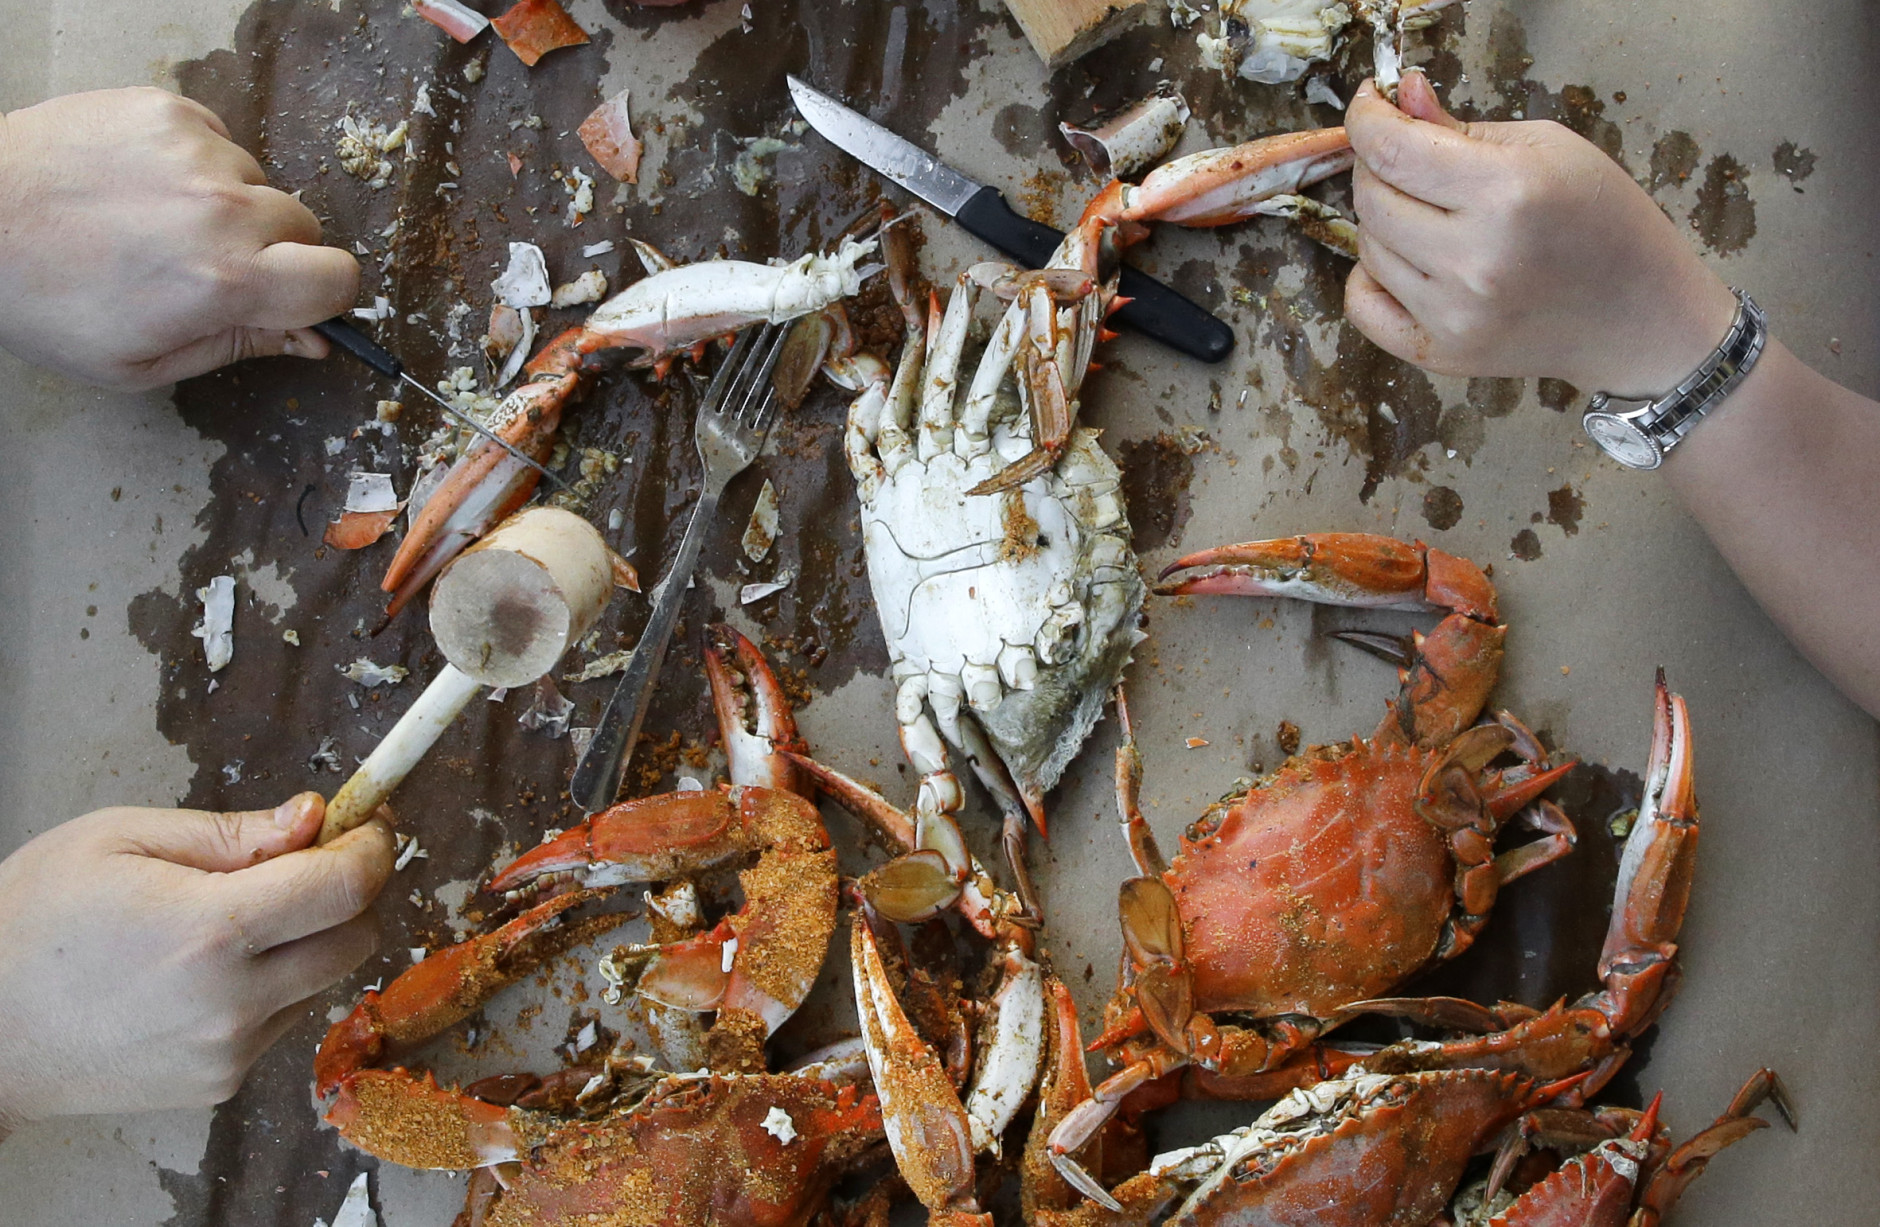 In this May 30, 2014 picture, Wallie Leung, left, and his wife Jenny eat an order of crabs at Jimmy Cantler's Riverside Inn in Annapolis, Md. (AP Photo/Patrick Semansky)